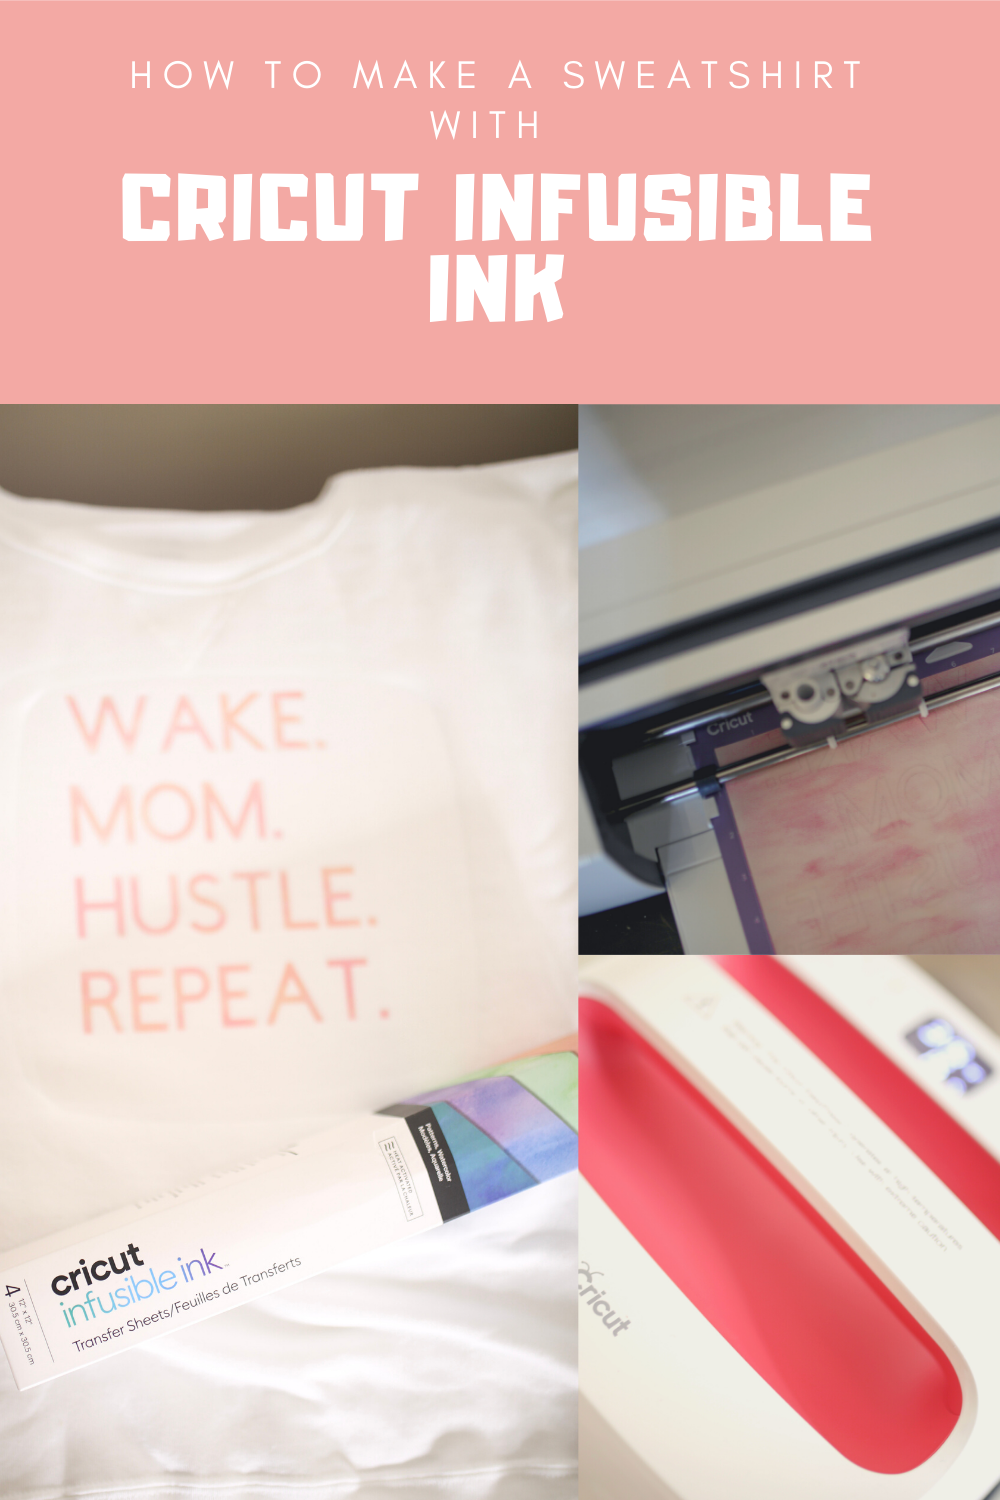 How to use Cricut Infusible Ink on a Sweatshirt